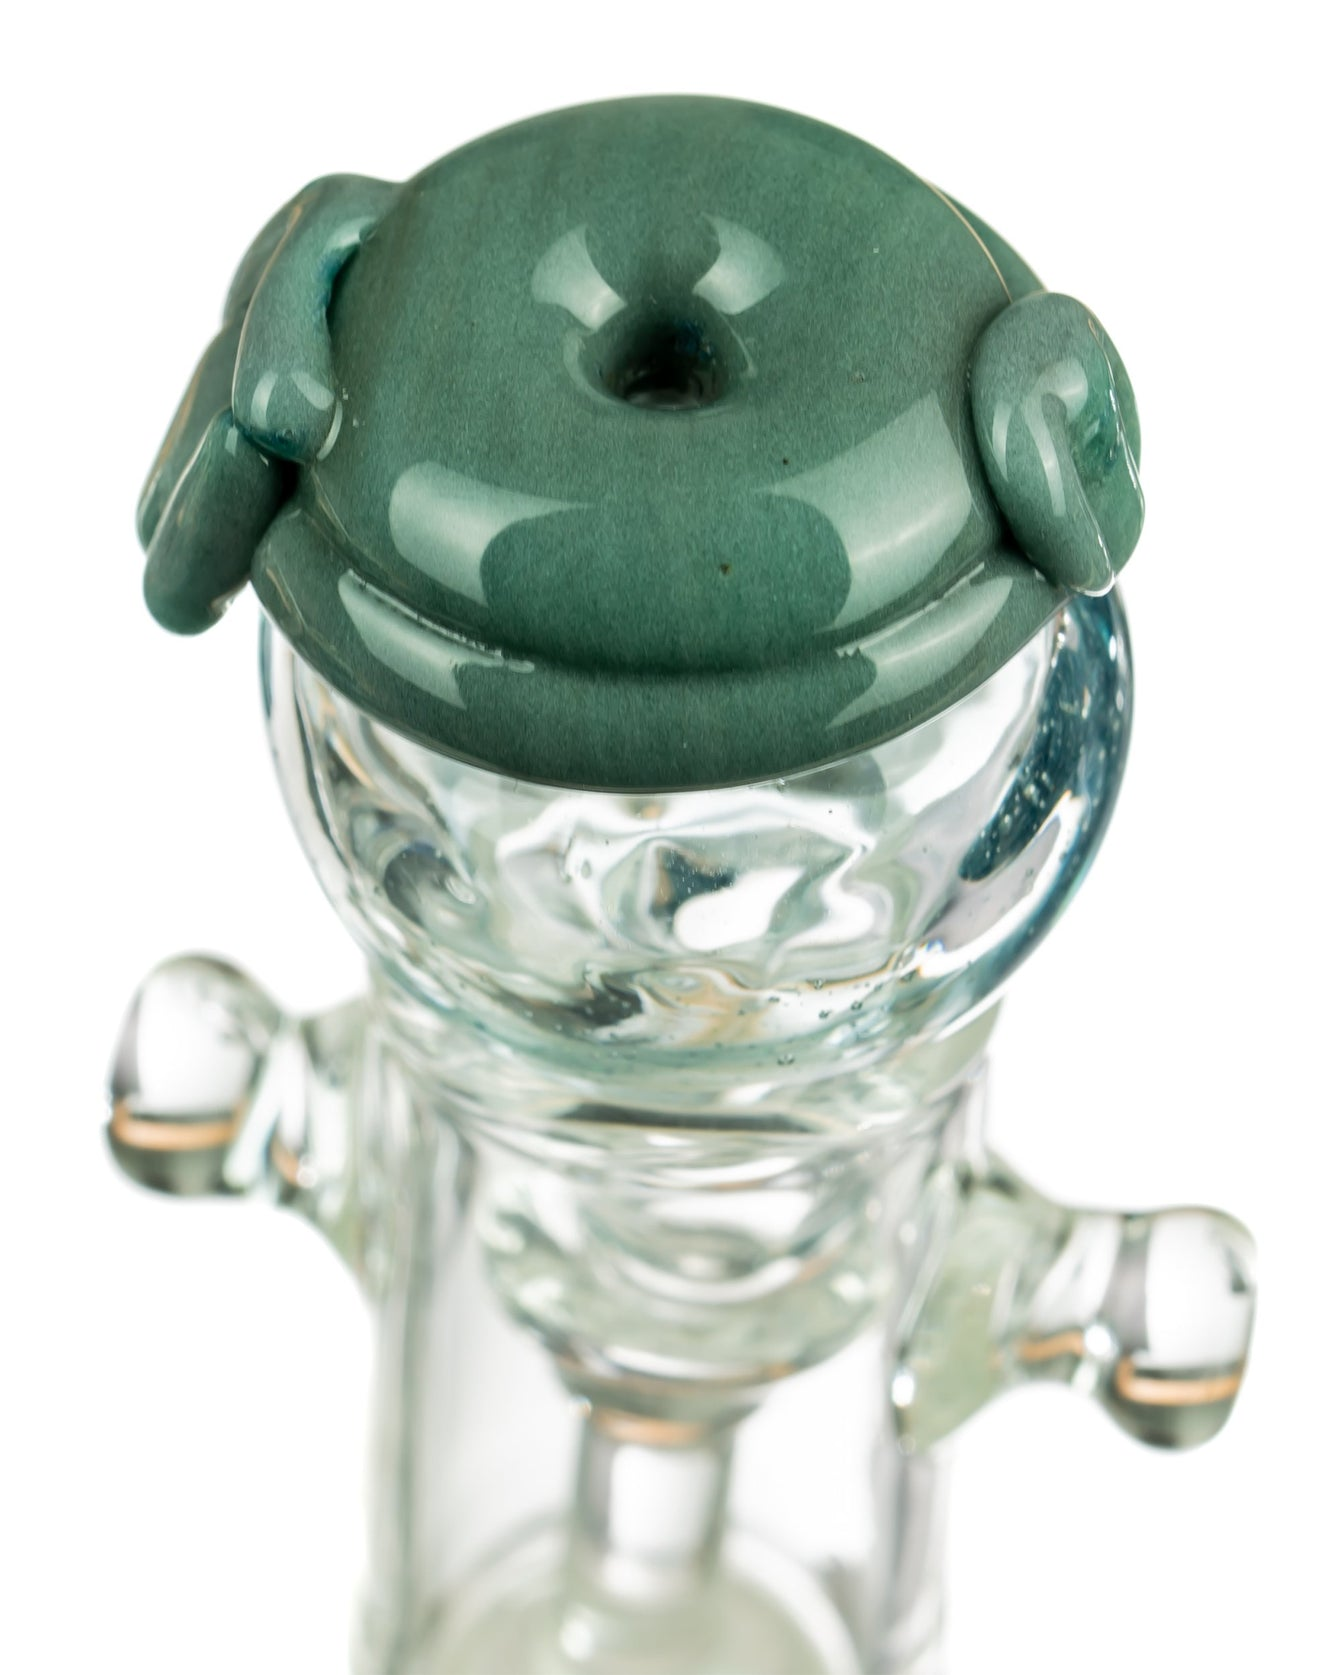 Themed Carb Cap